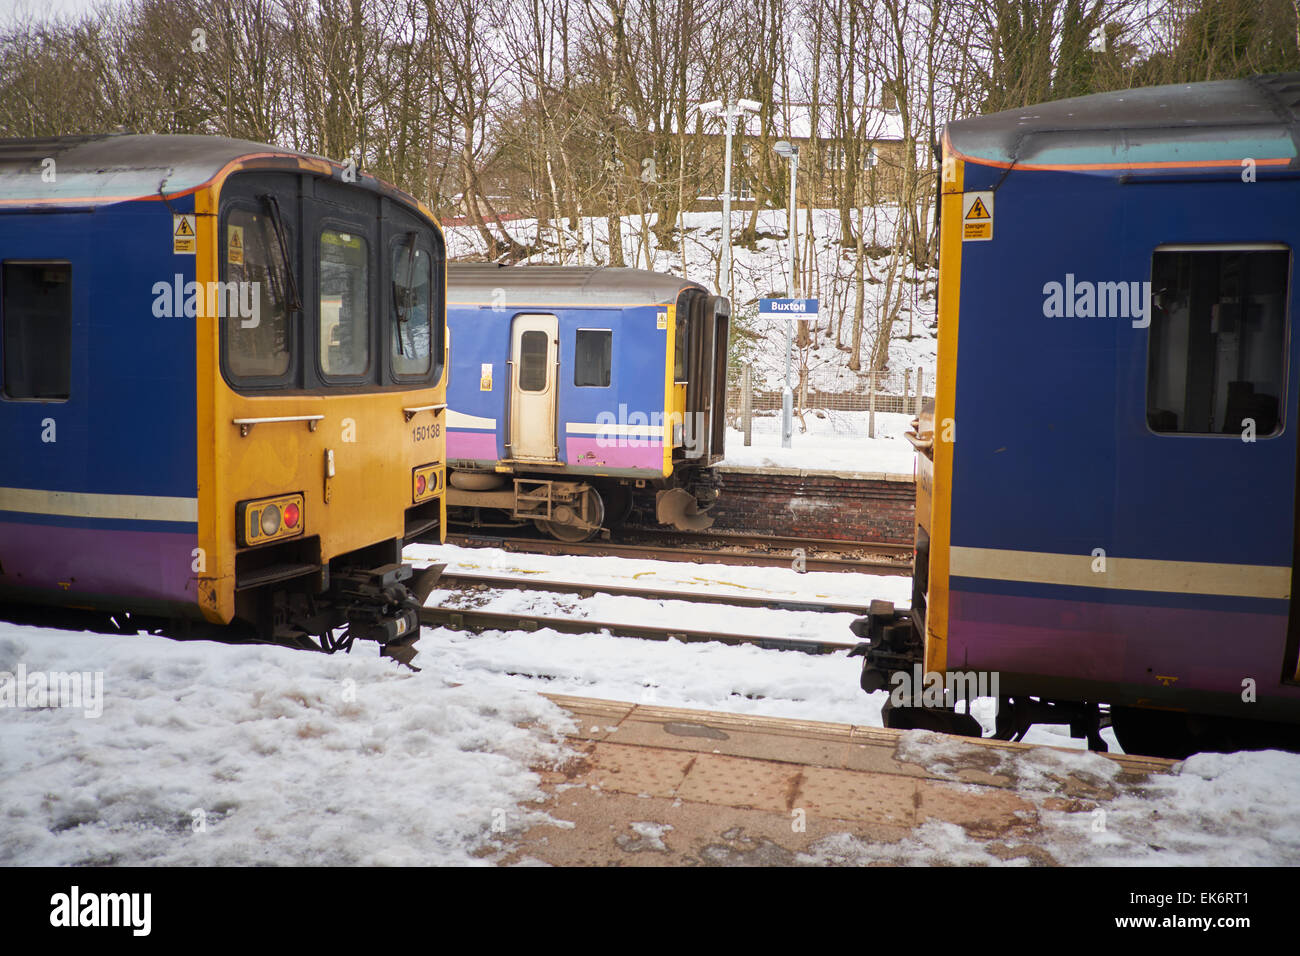 Buxton is a spa town in Derbyshire, England UK Northern Rail units wait in the snow at the train station terminus - Stock Image